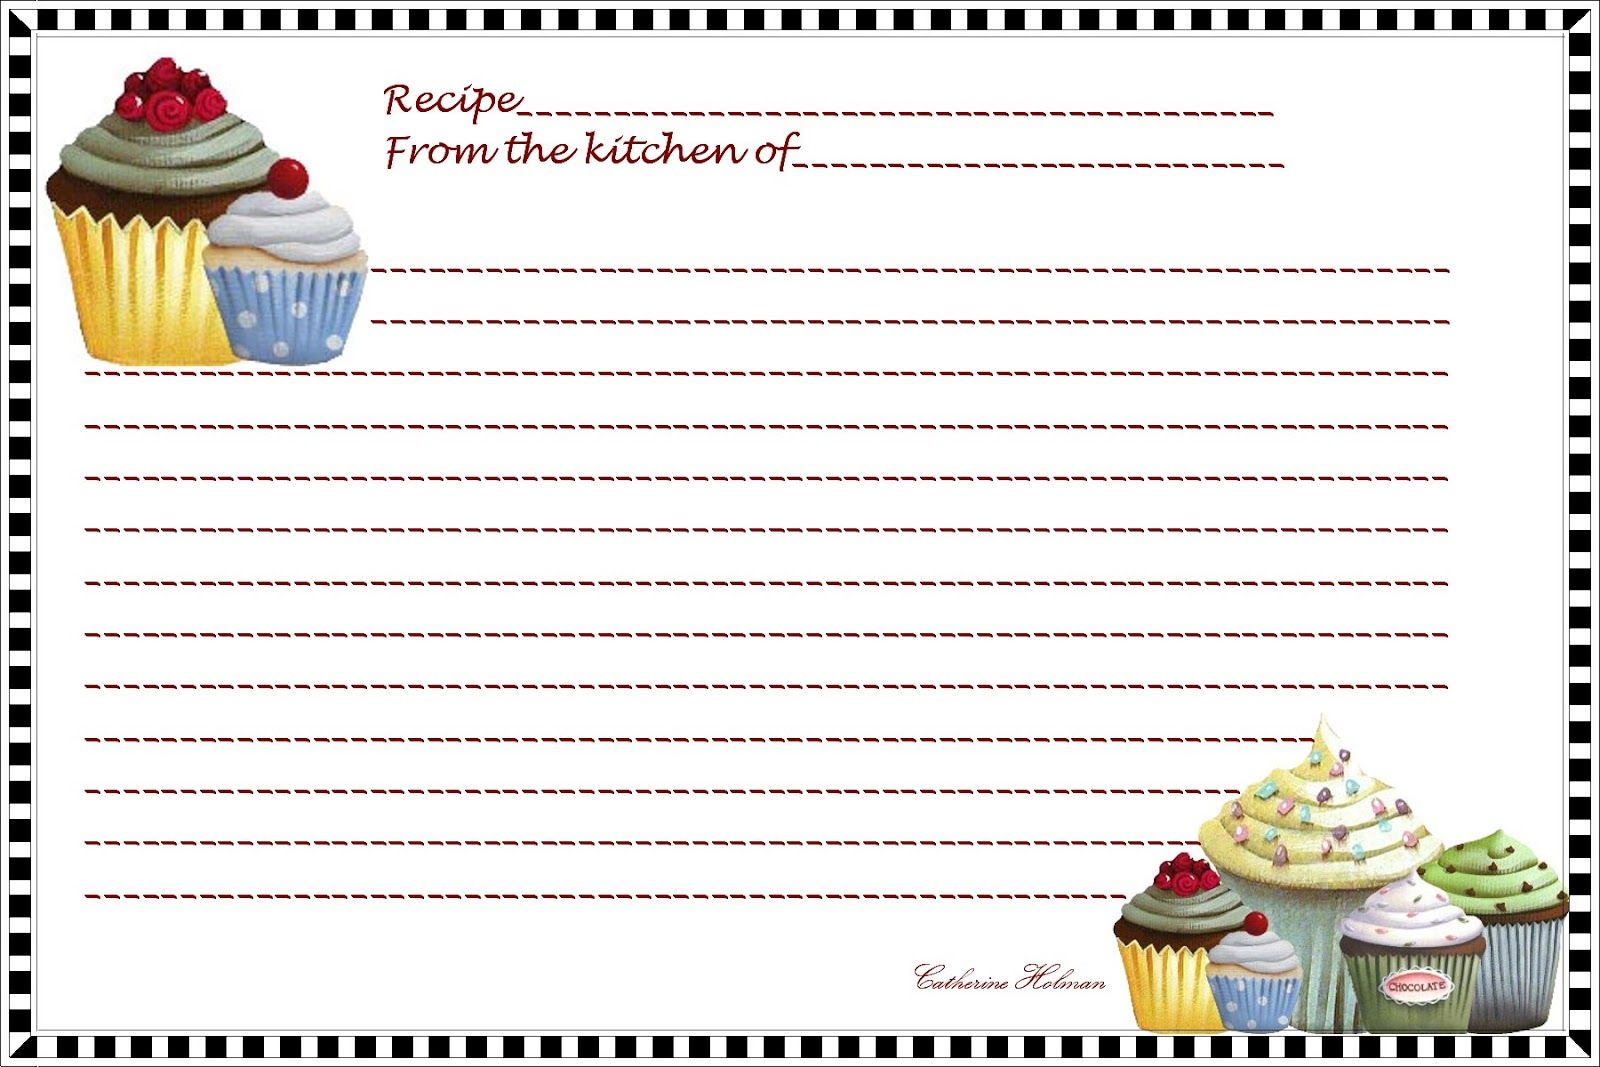 Free Printables Recipes Index Card    Reply You Can Print This - Free Printable Index Cards